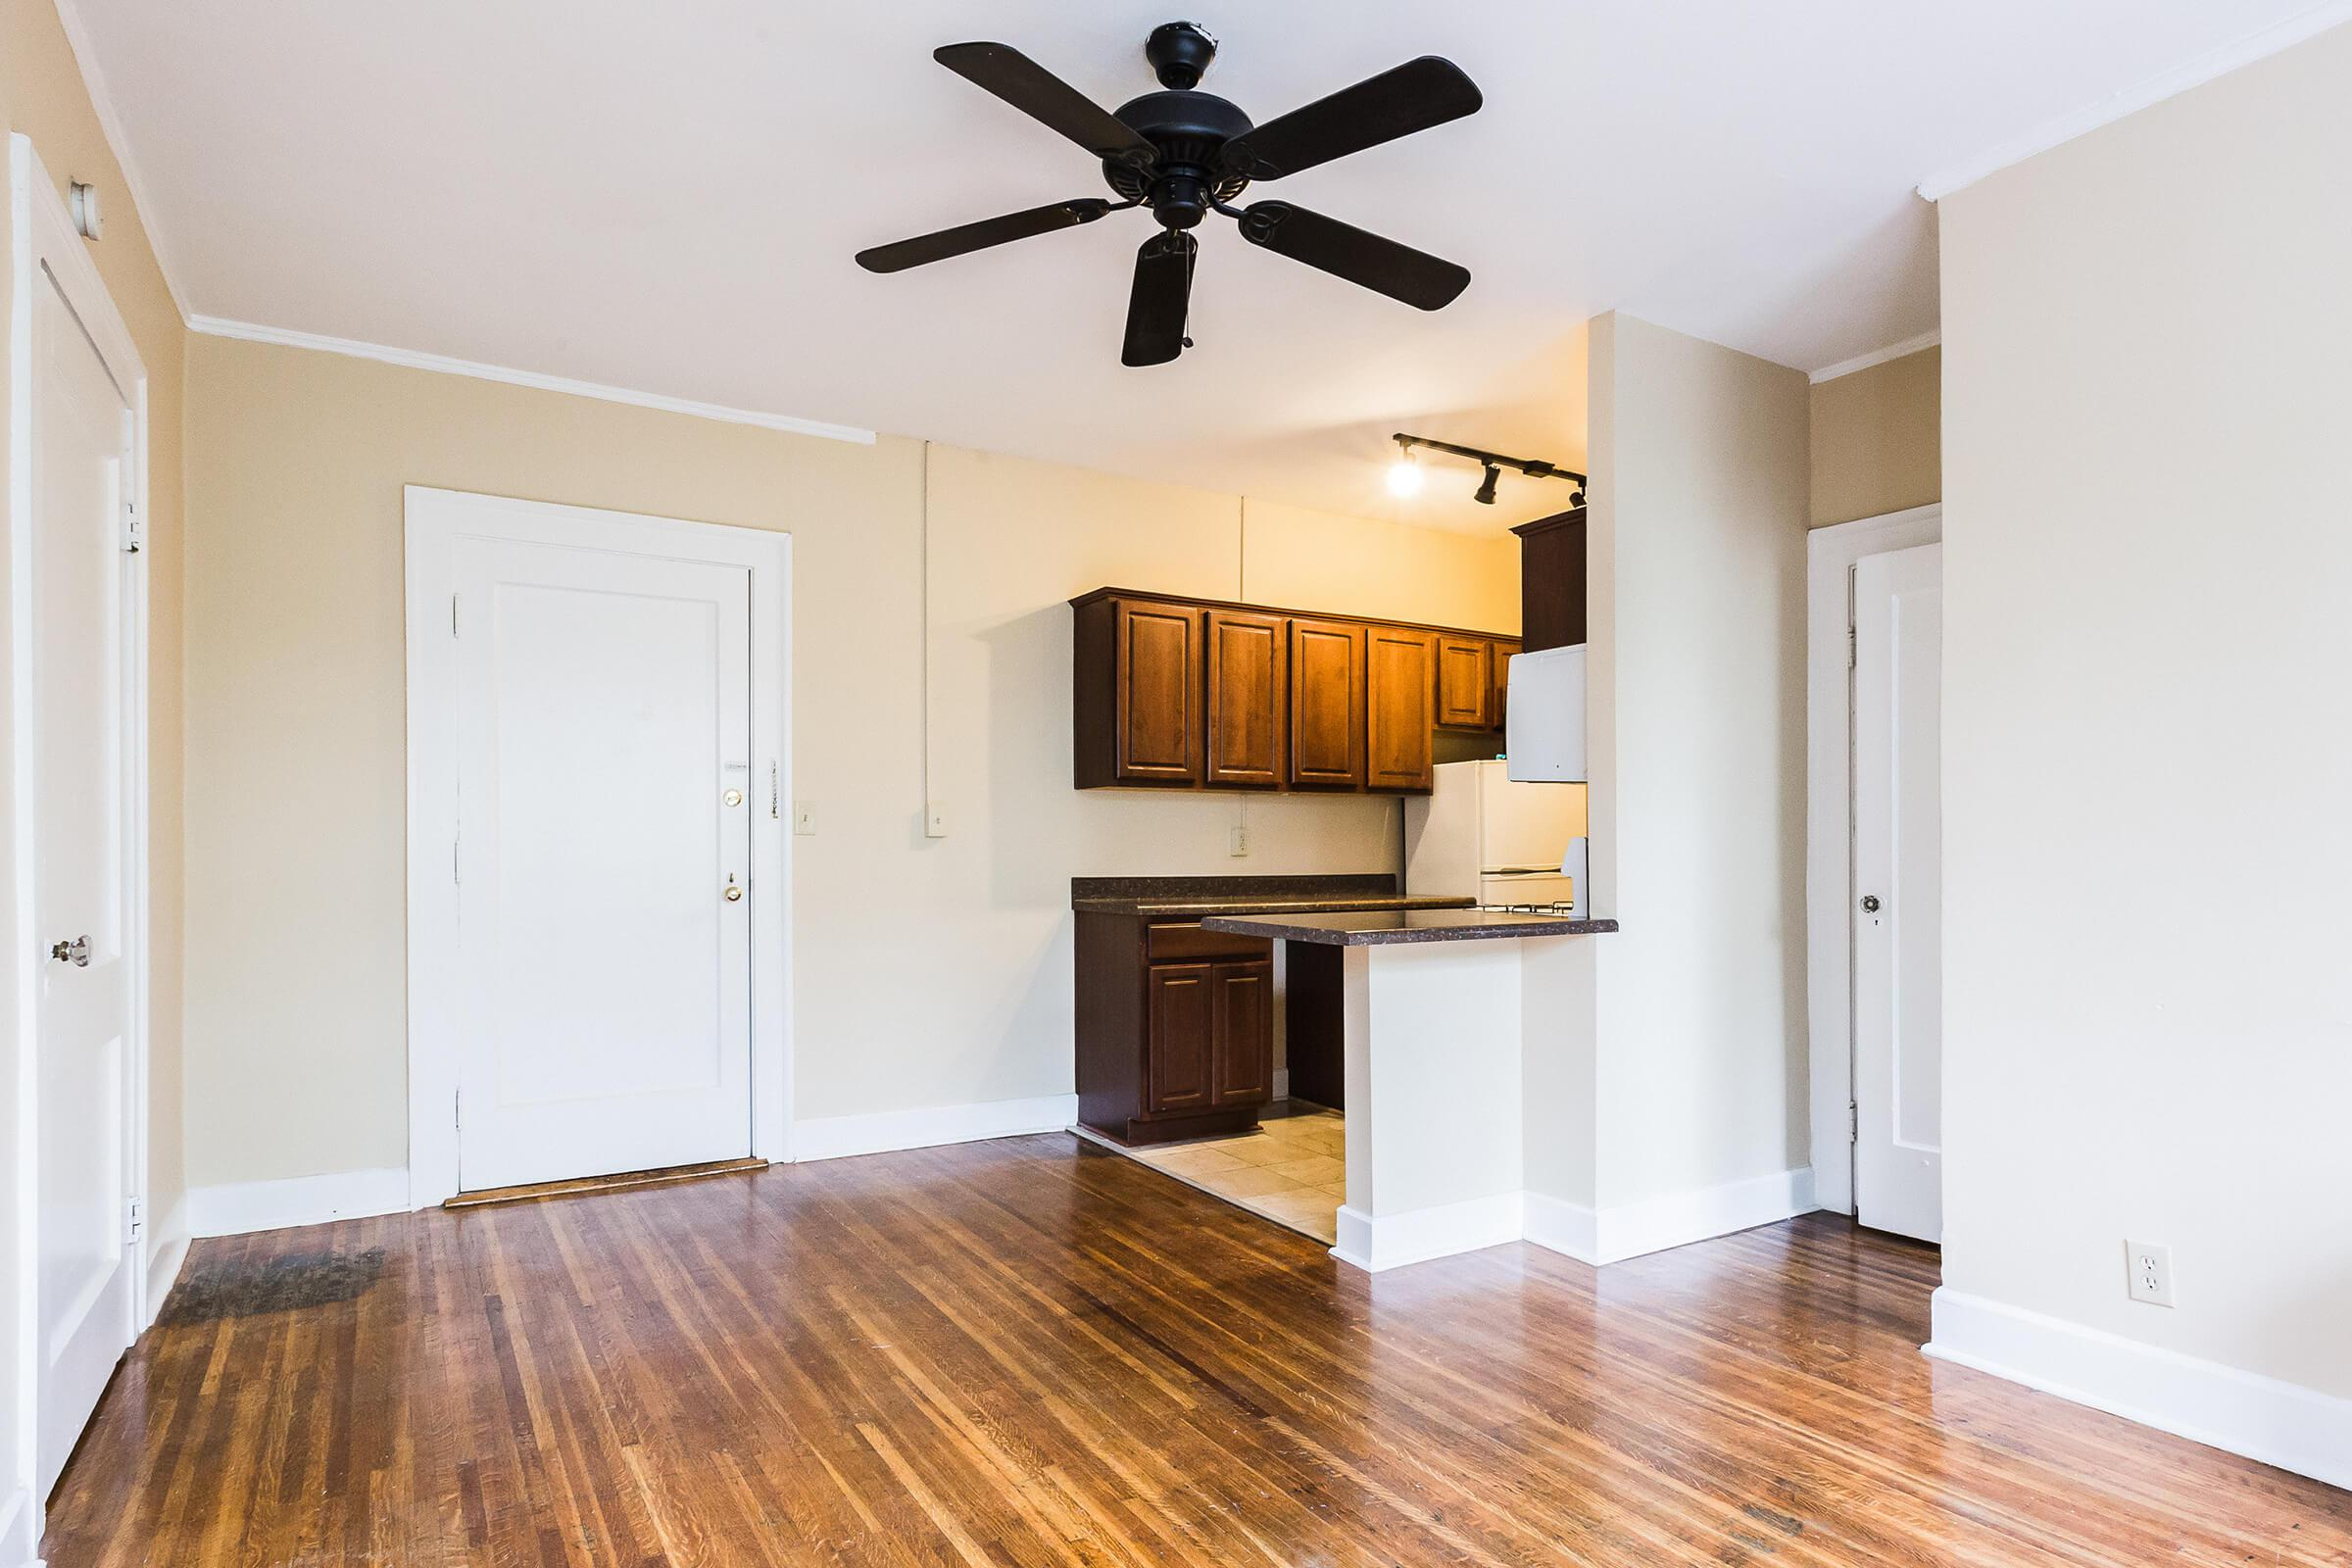 a kitchen with a hard wood floor